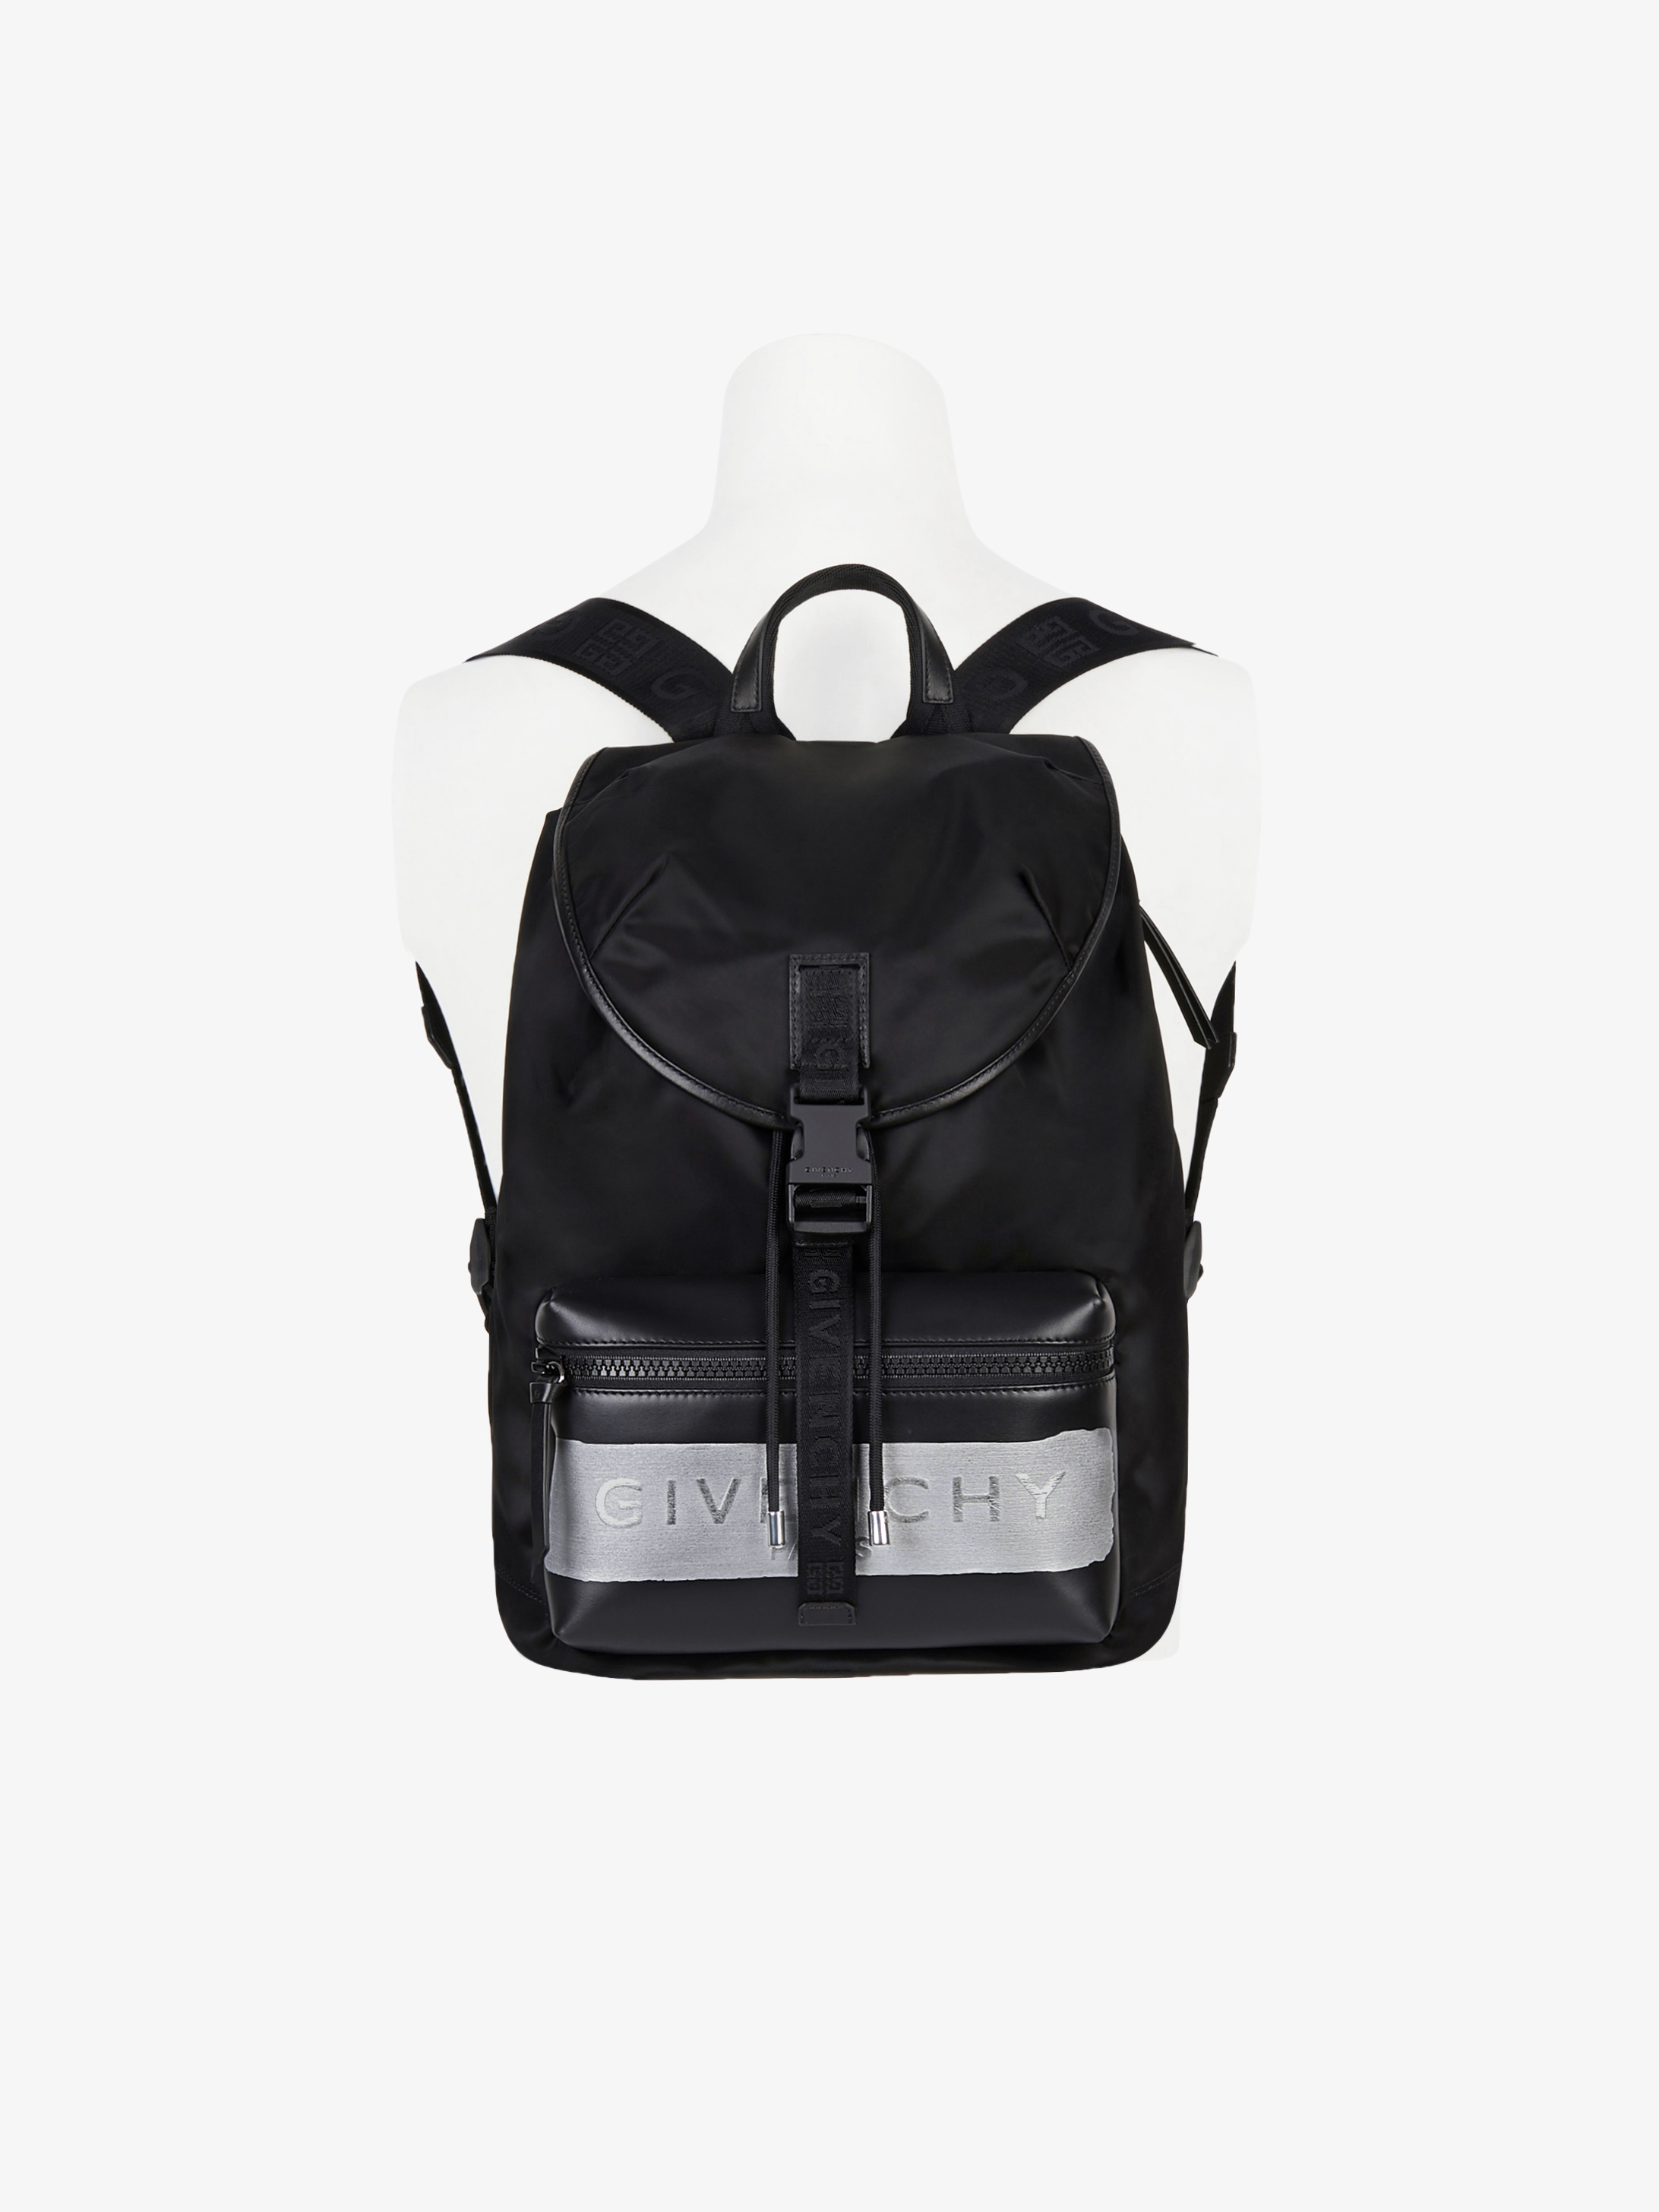 GIVENCHY backpack in nylon with latex band